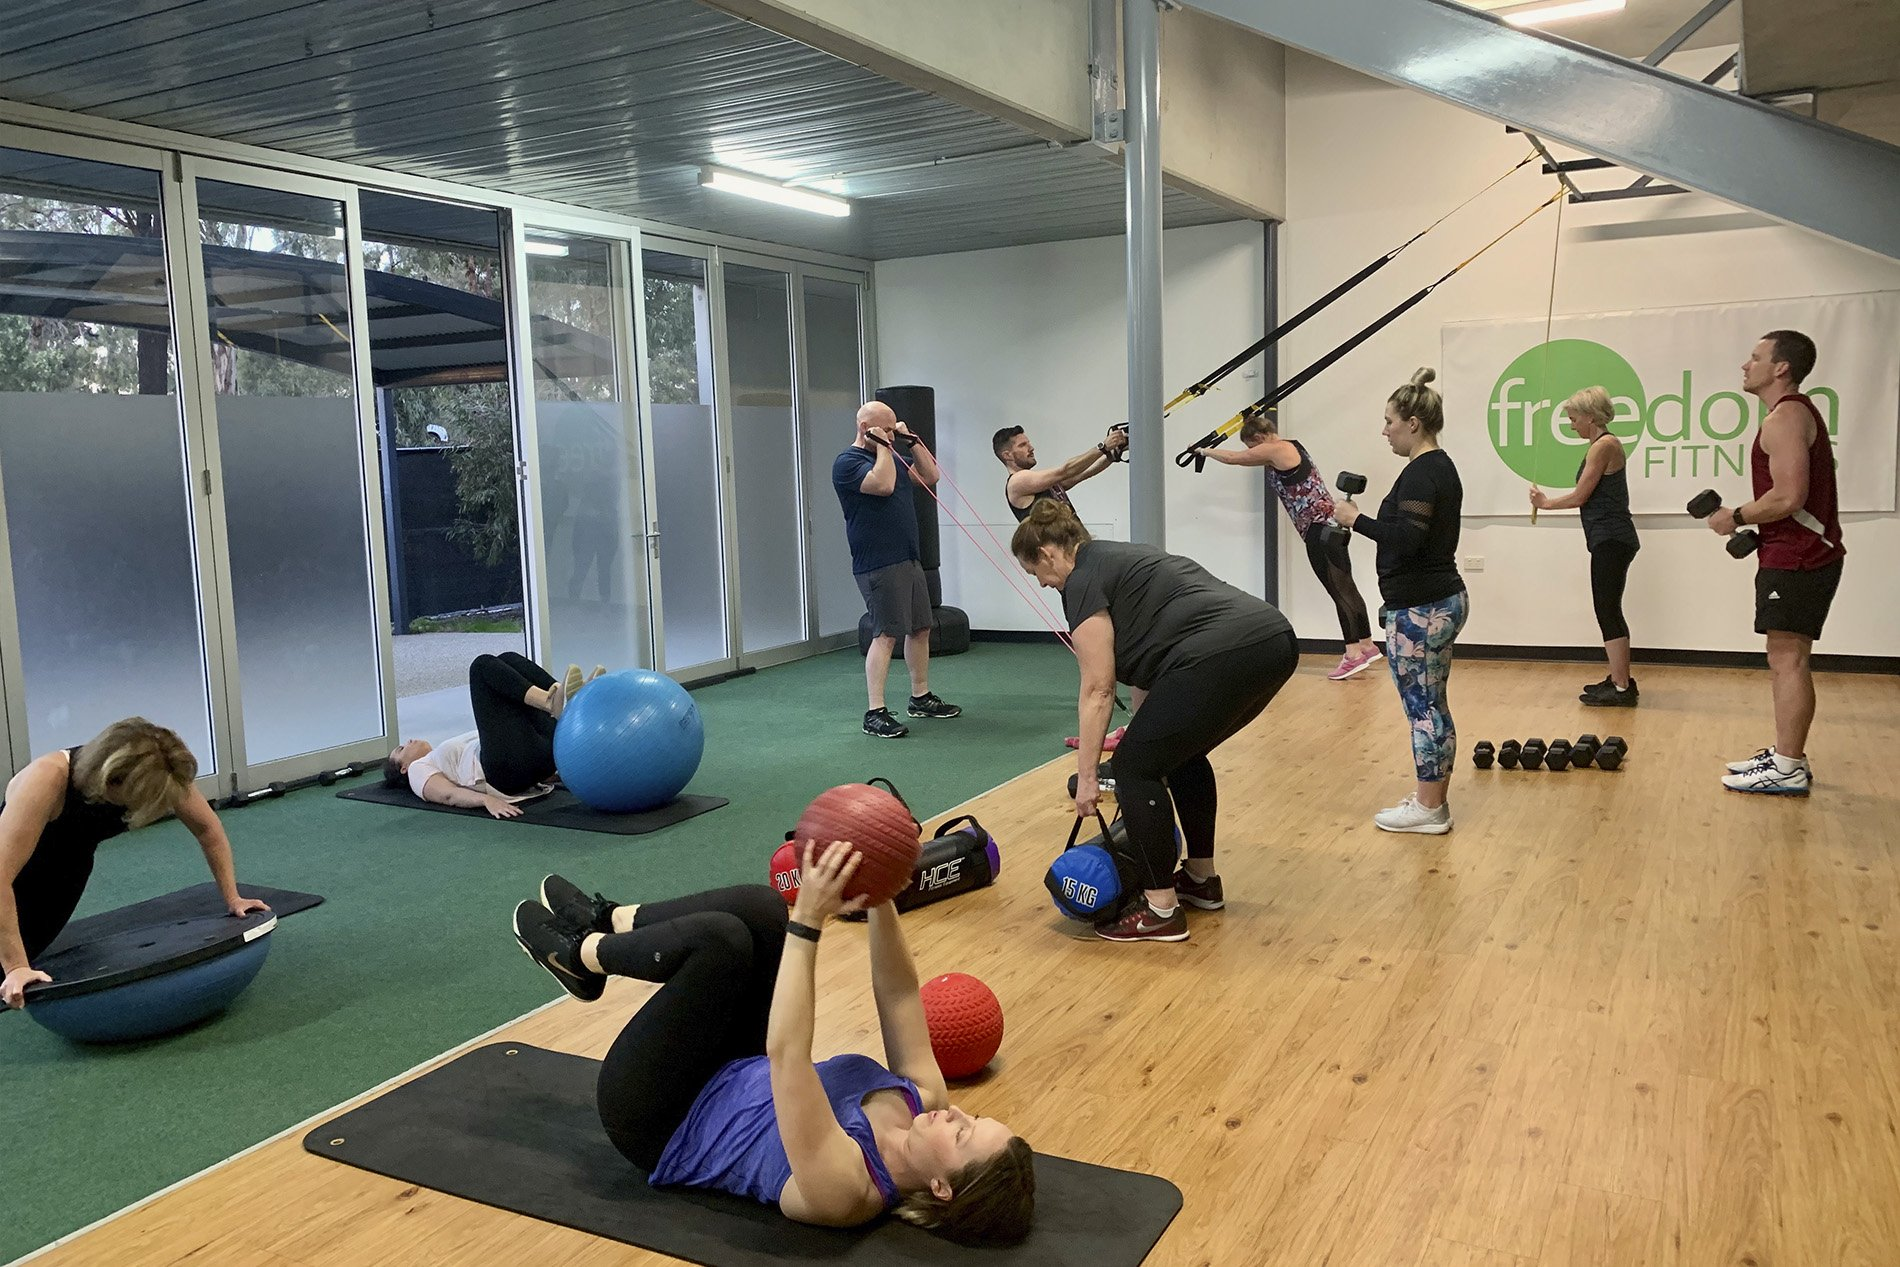 boot-camp-free-form-group-fitness-hobart-gym